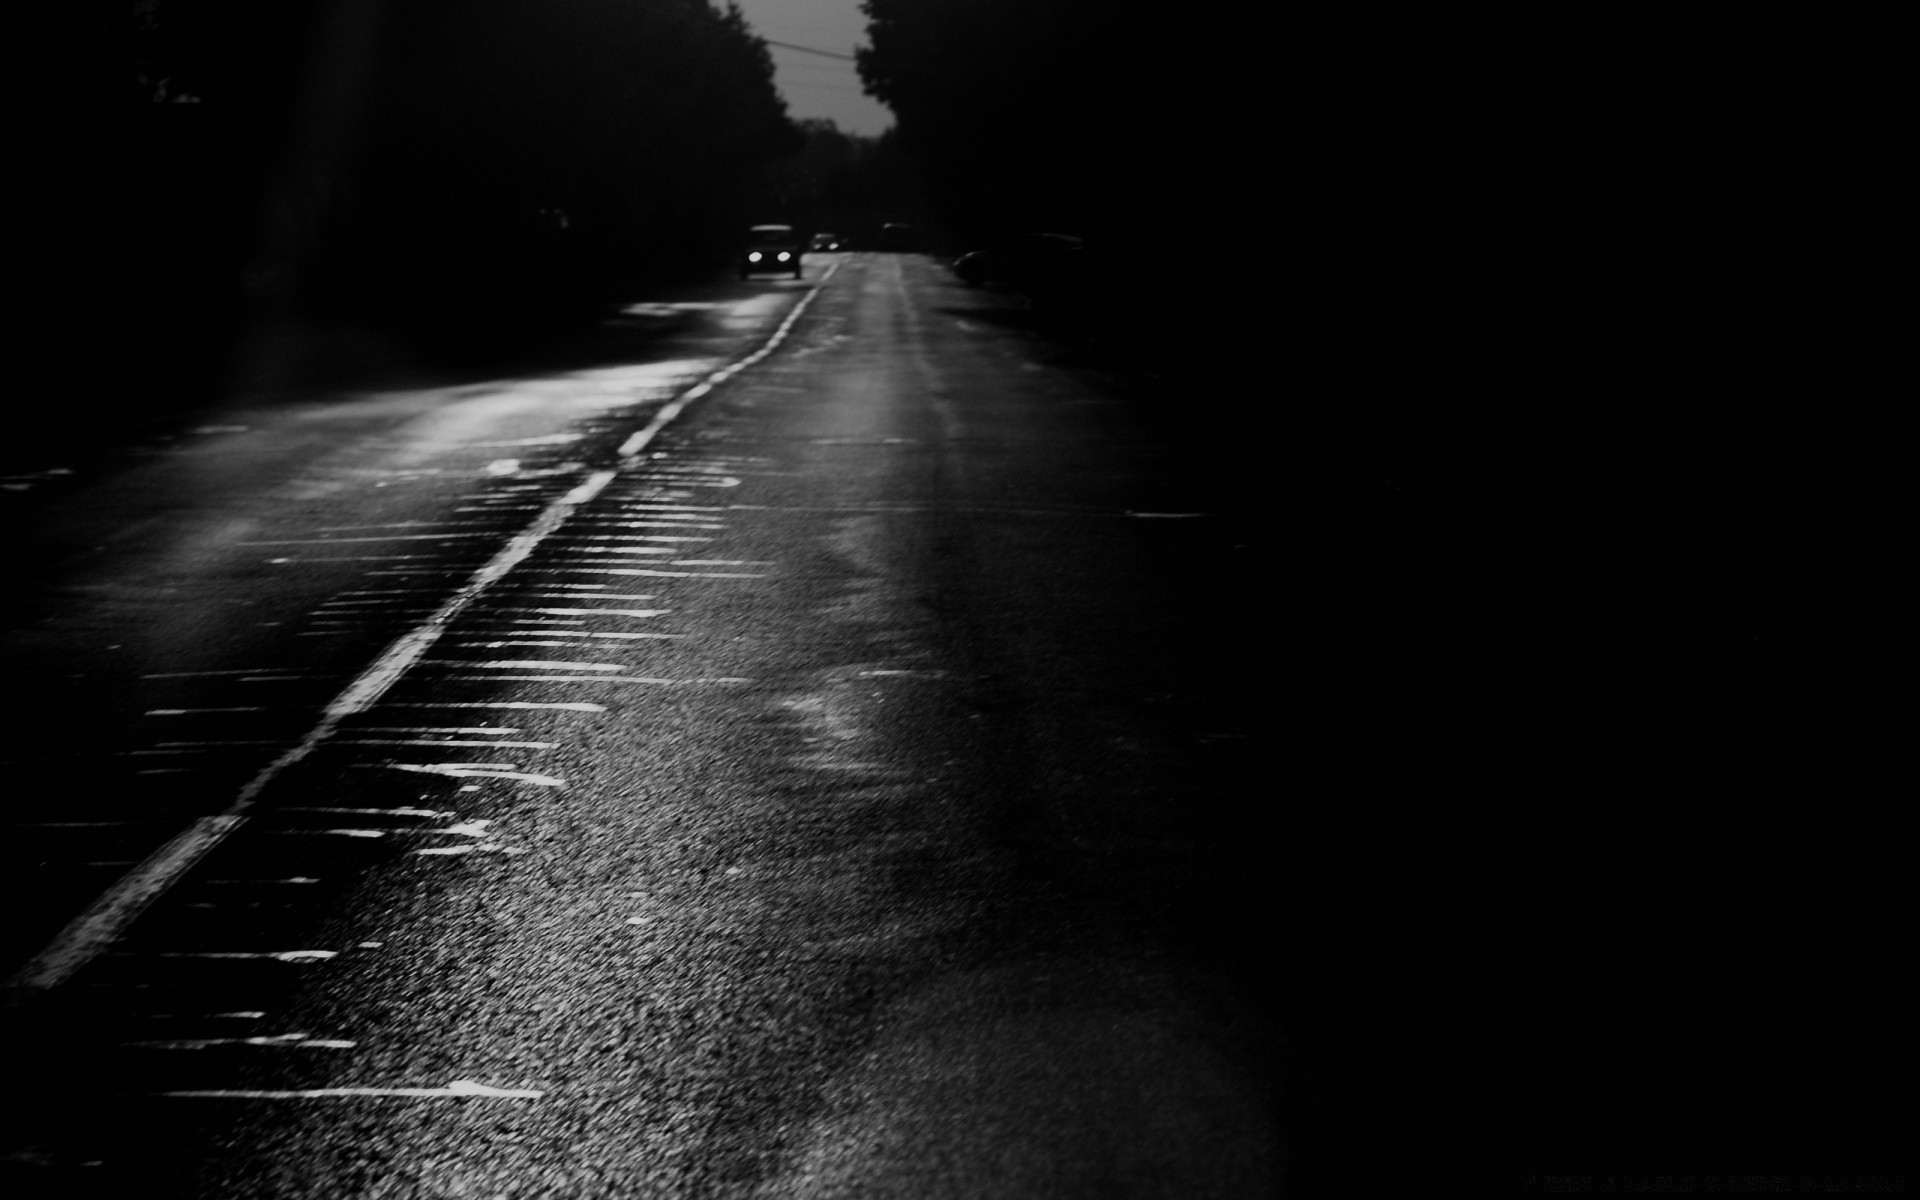 black dark street road monochrome blur light transportation system guidance asphalt travel car